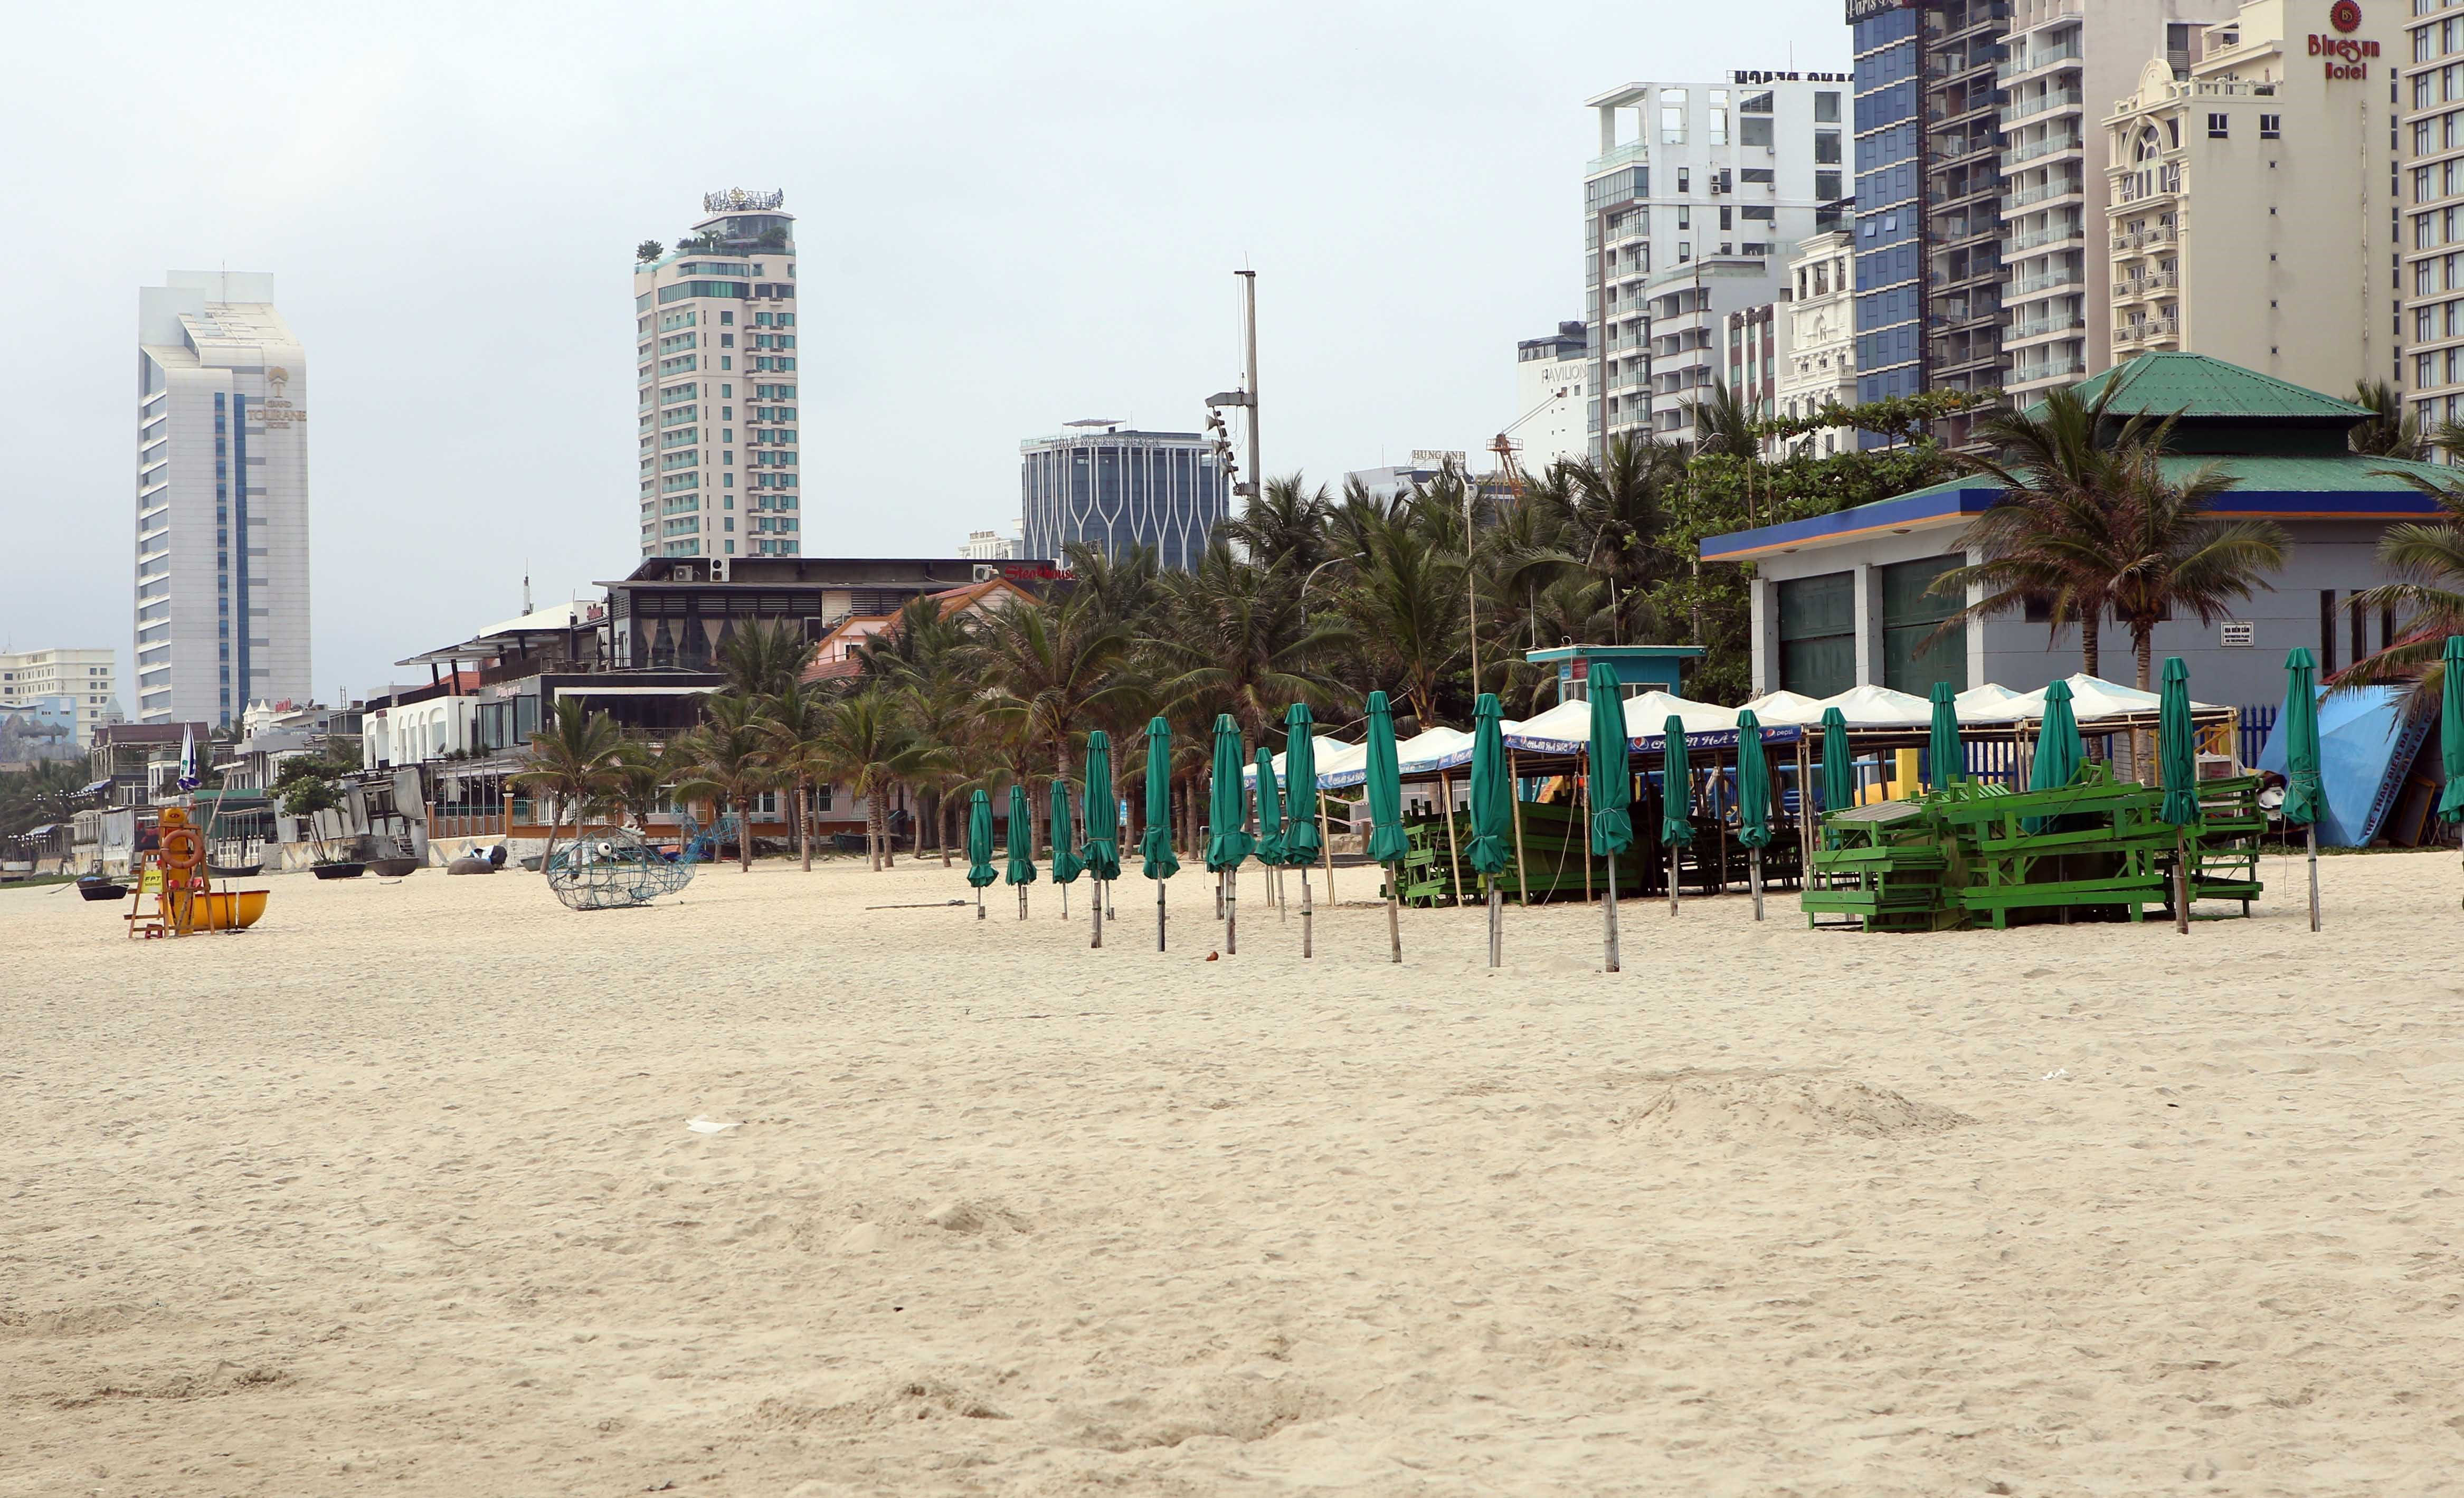 Restaurants and shops are closed on a beach in Da Nang, Vietnam, on April 1.